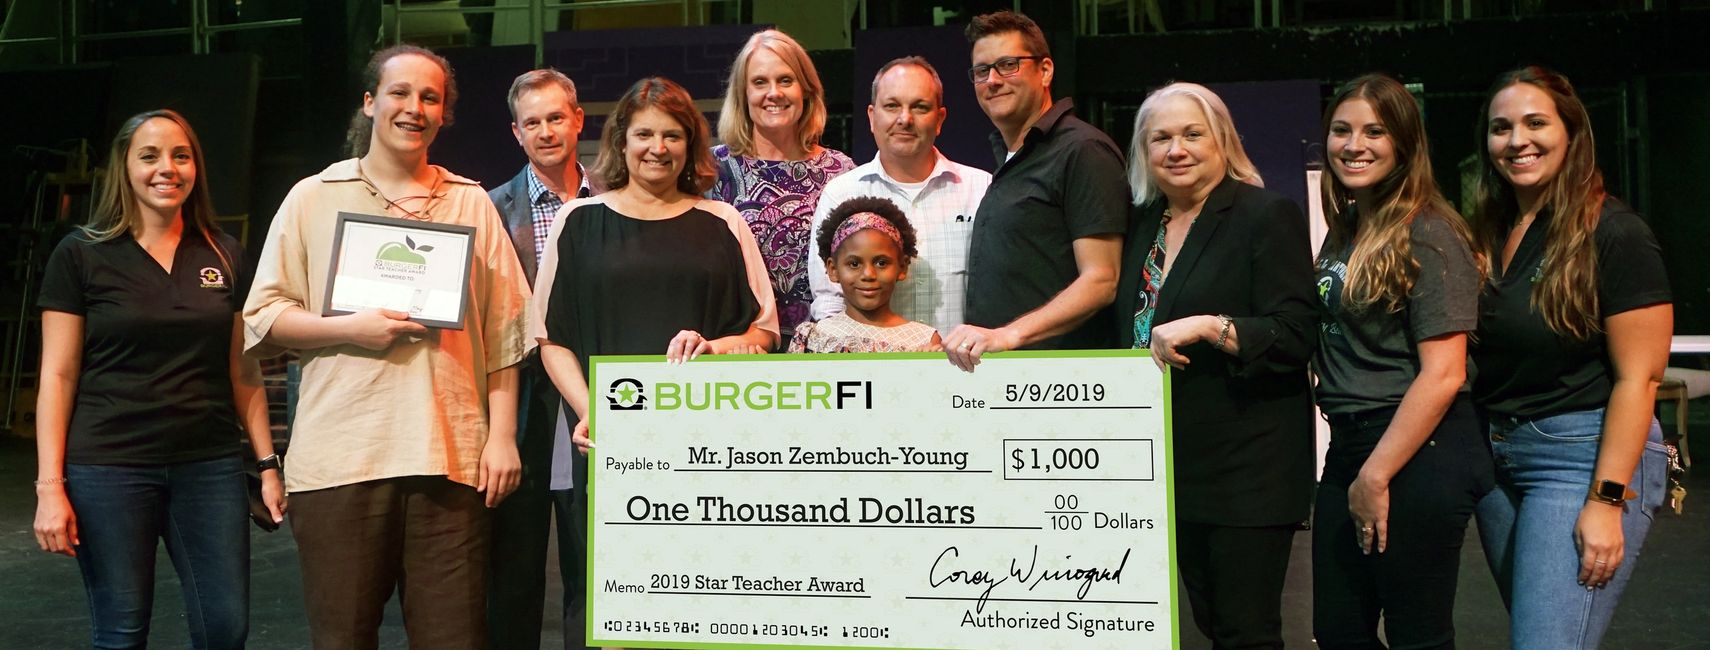 Burger-Fi Star Teacher of the Year, wi/ Principal Henschel & SBBC Board Member Laurie Rich Levinson.